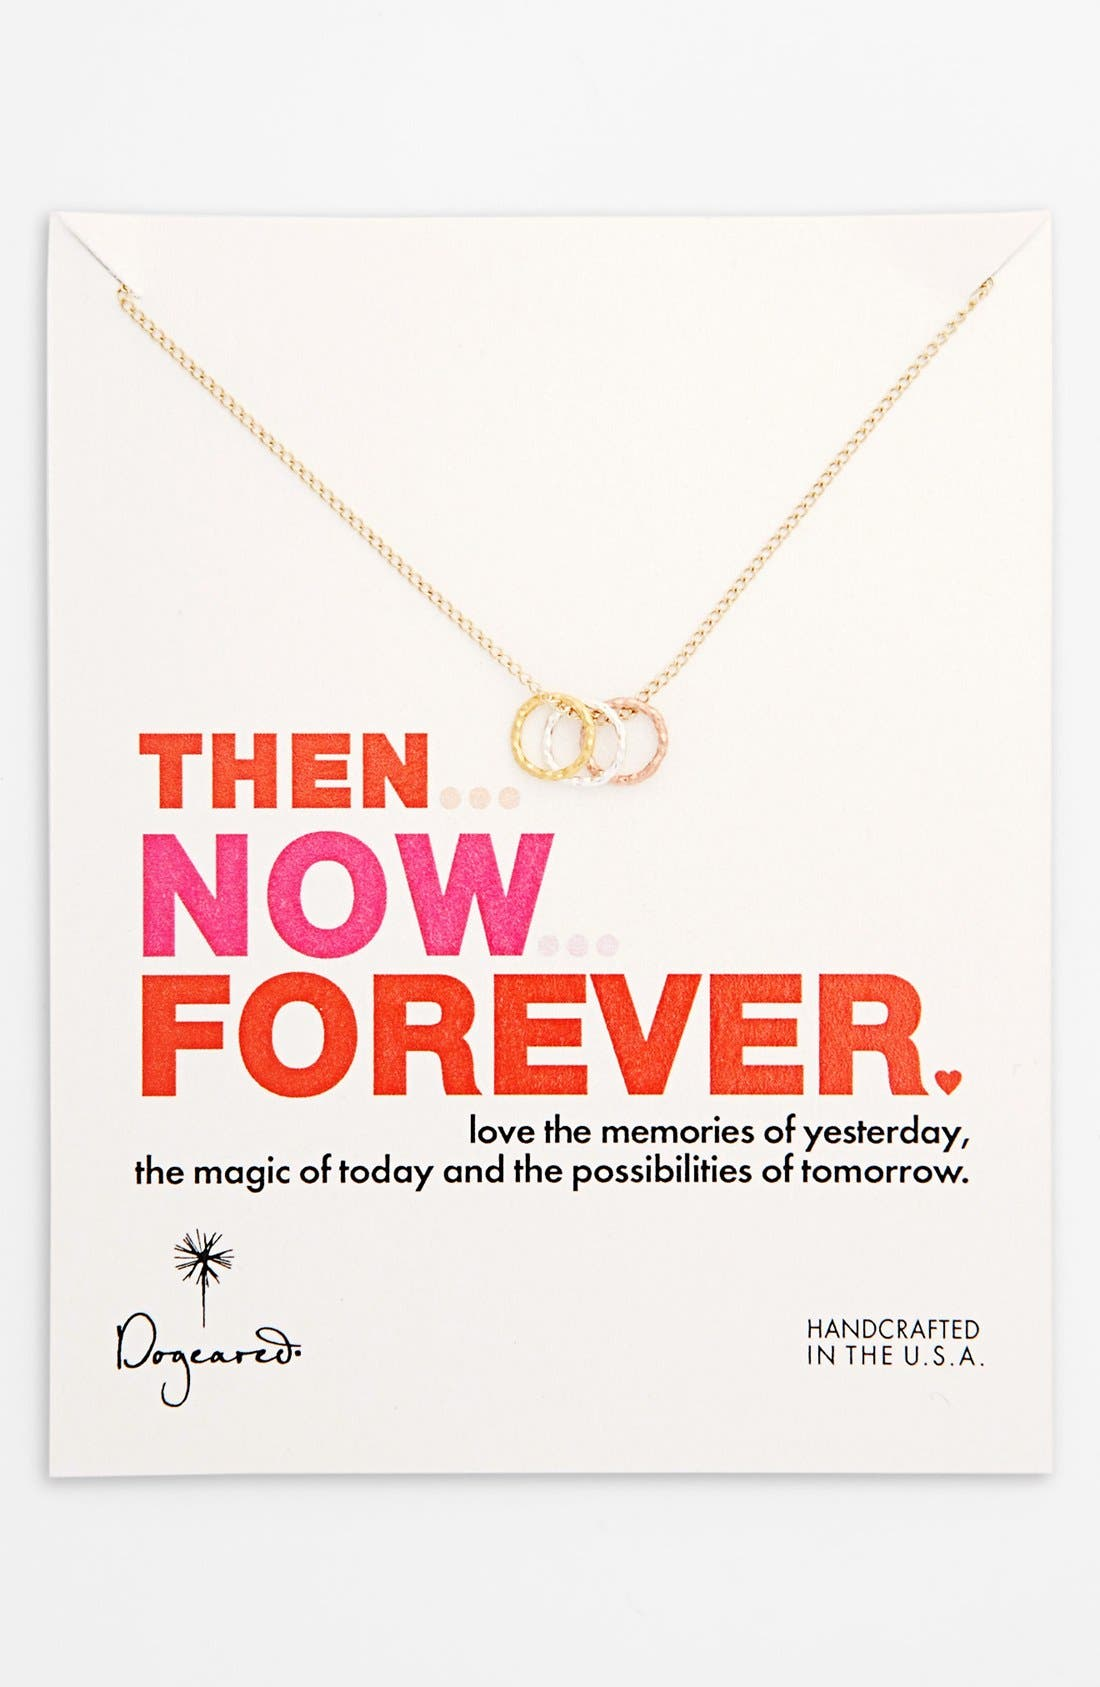 Alternate Image 1 Selected - Dogeared 'Then, Now, Forever' Boxed 3-Ring Pendant Necklace